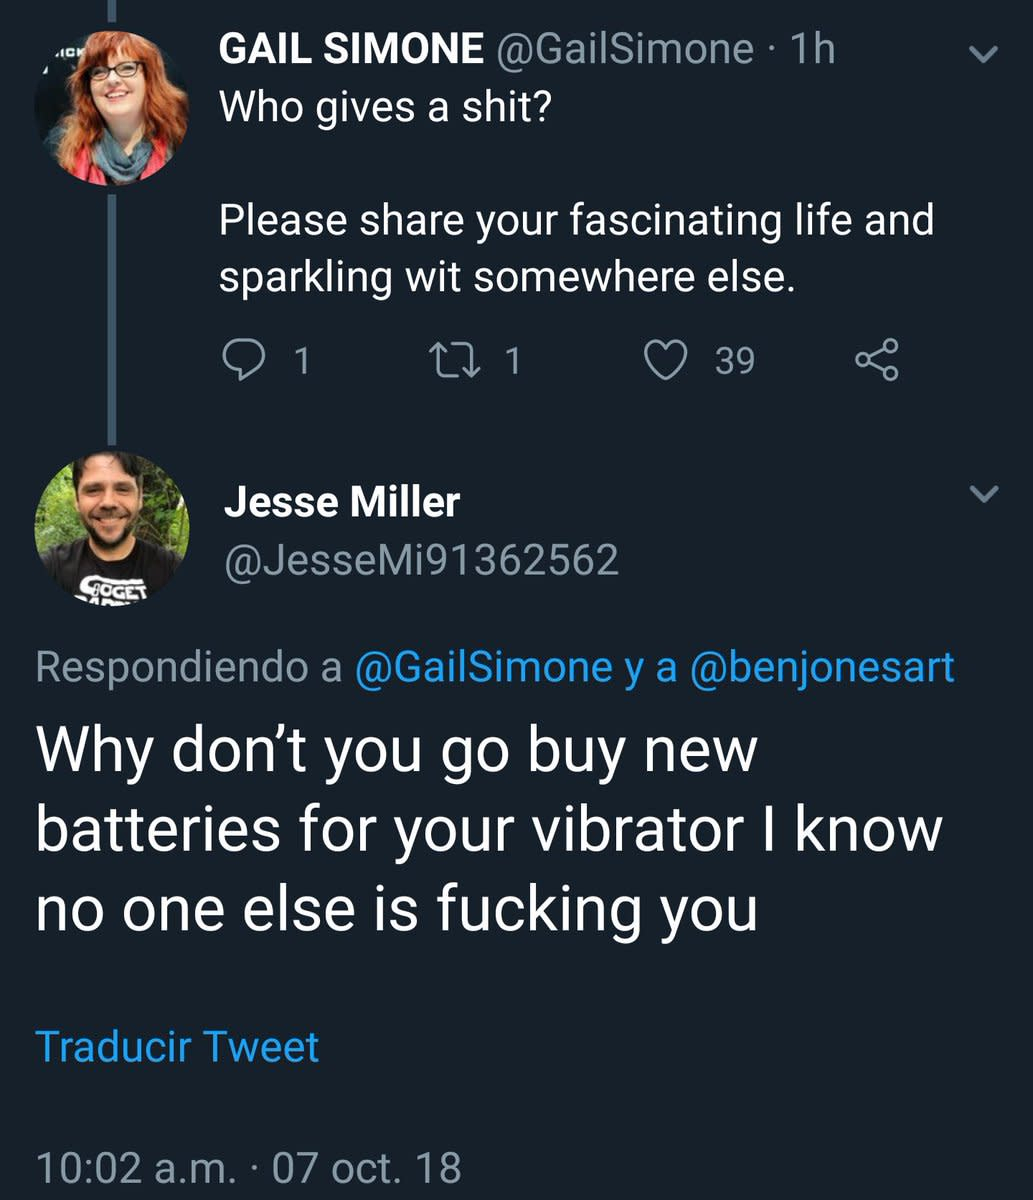 A sample of what Comicsgate subjects its victims to on a daily basis. And yes, It gets worse.